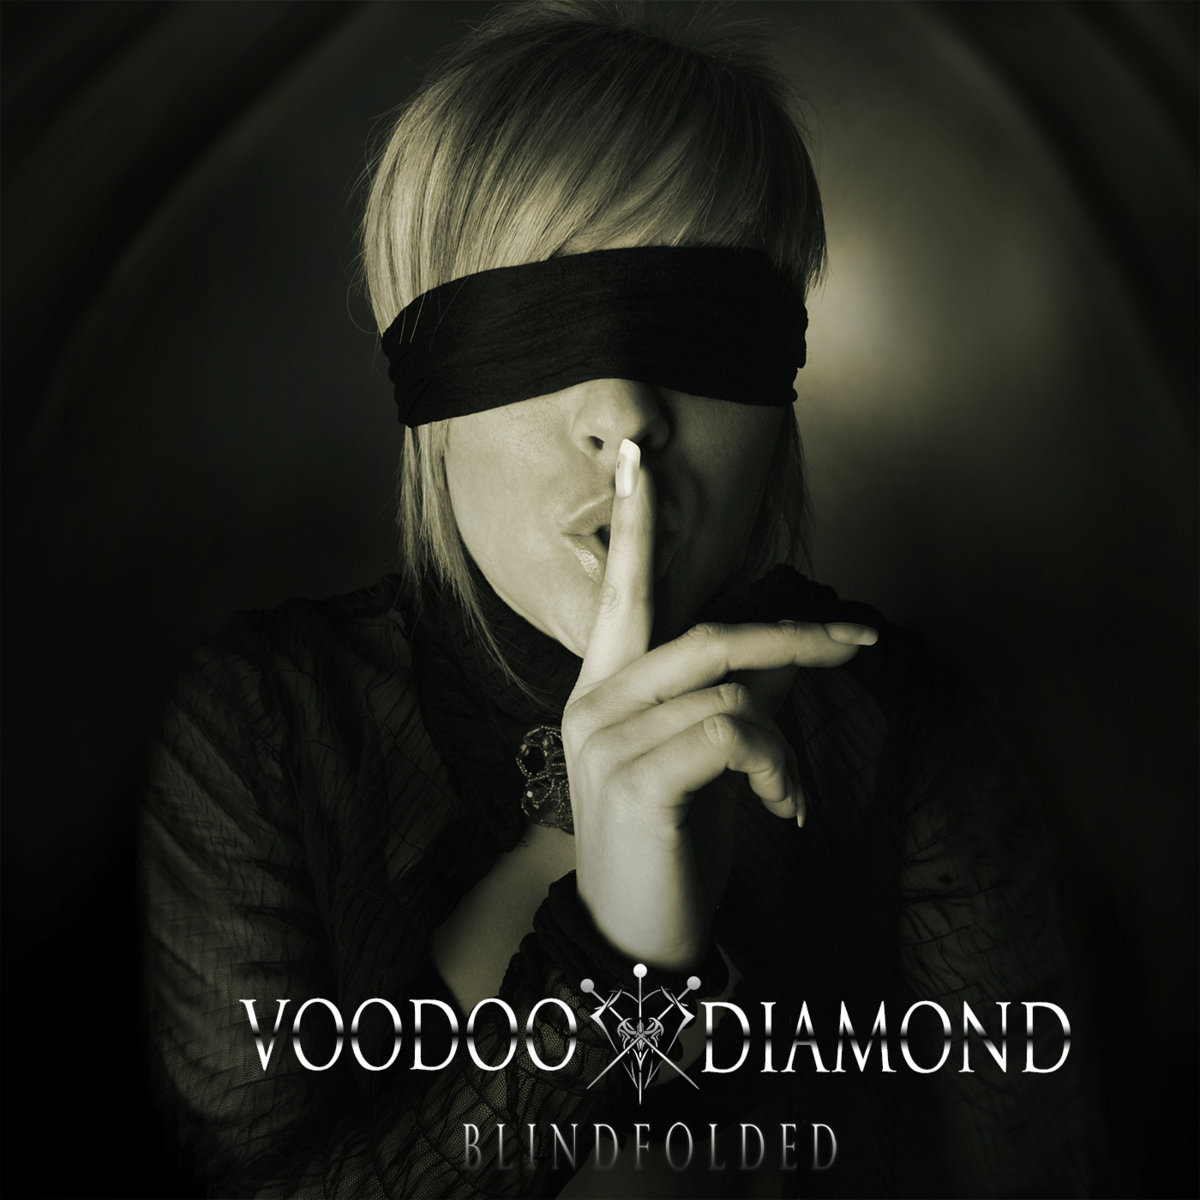 www.facebook.com/Voodoo-Diamond-1473789166226500